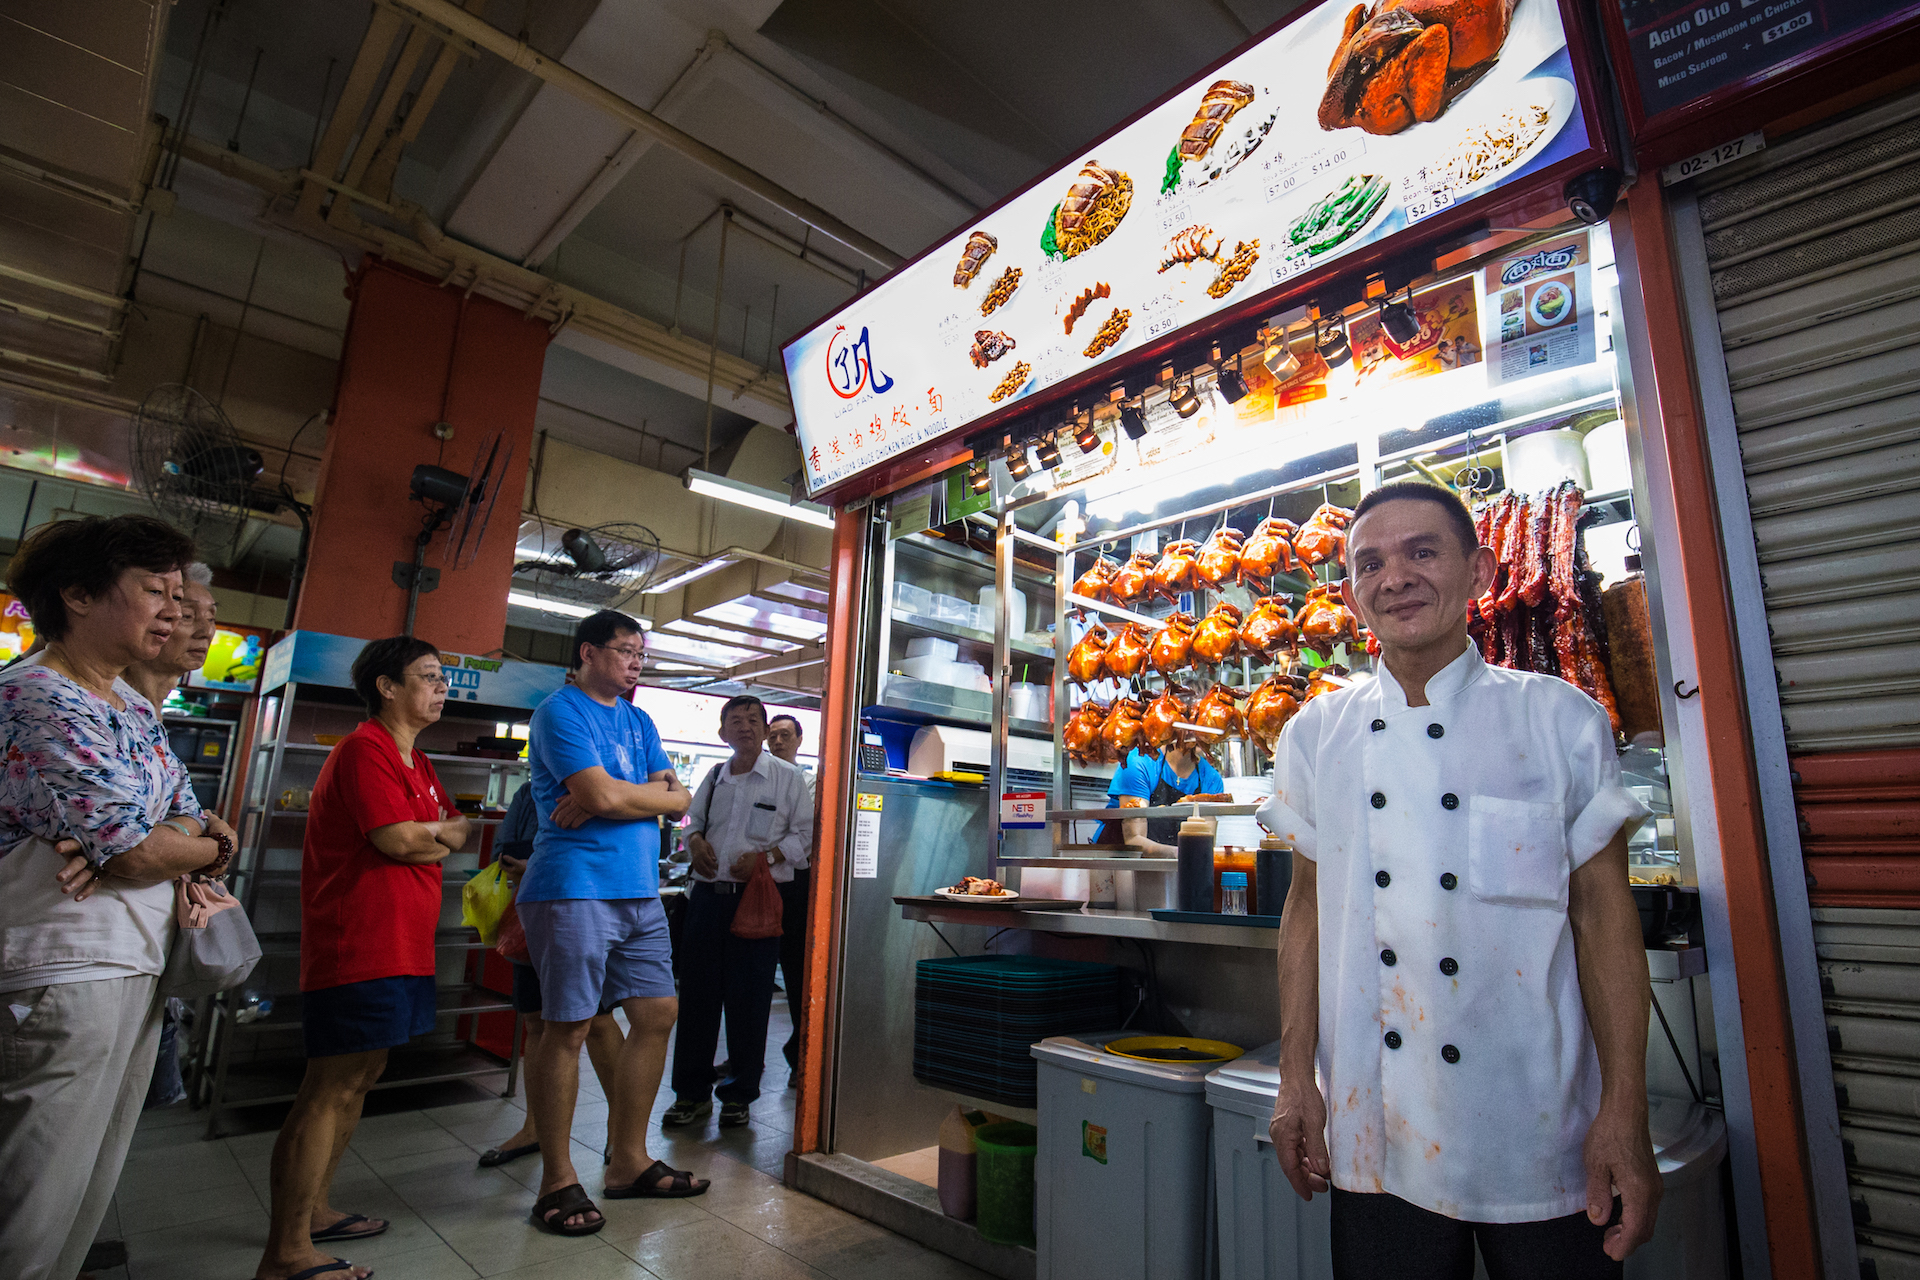 Chan Hong Meng poses for a photo at his Hong Kong Chicken Rice and Noodle stall at Chinatown Complex on July 24, 2016 in Singapore. Chan was awarded a one-star rating by Michelin on July 21, making him one of the first street food hawkers to be awarded in the guide's history.